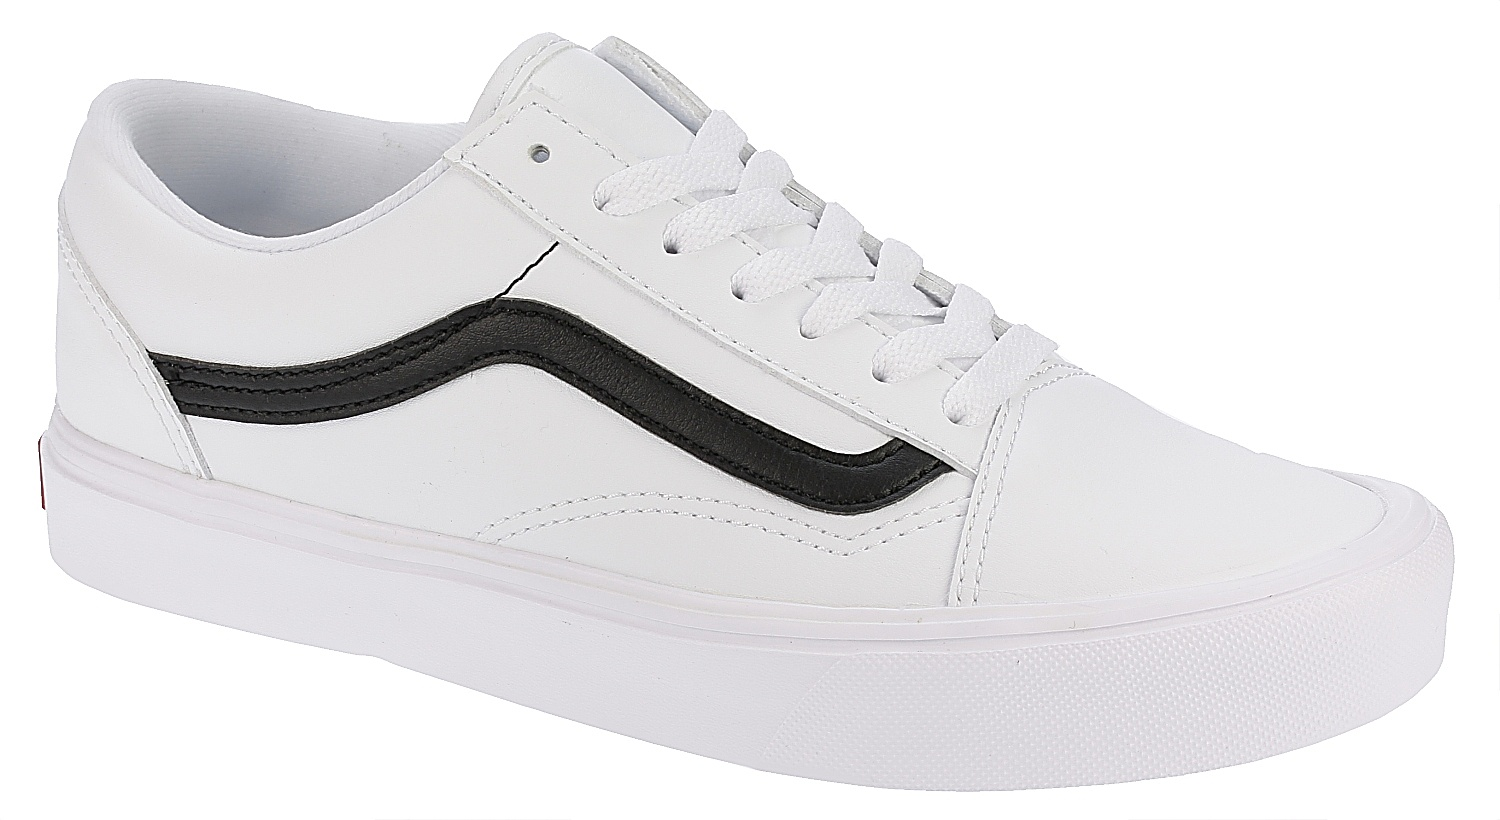 700263842e78 shoes Vans Old Skool Lite - Classic Tumble True White Black - Snowboard  shop